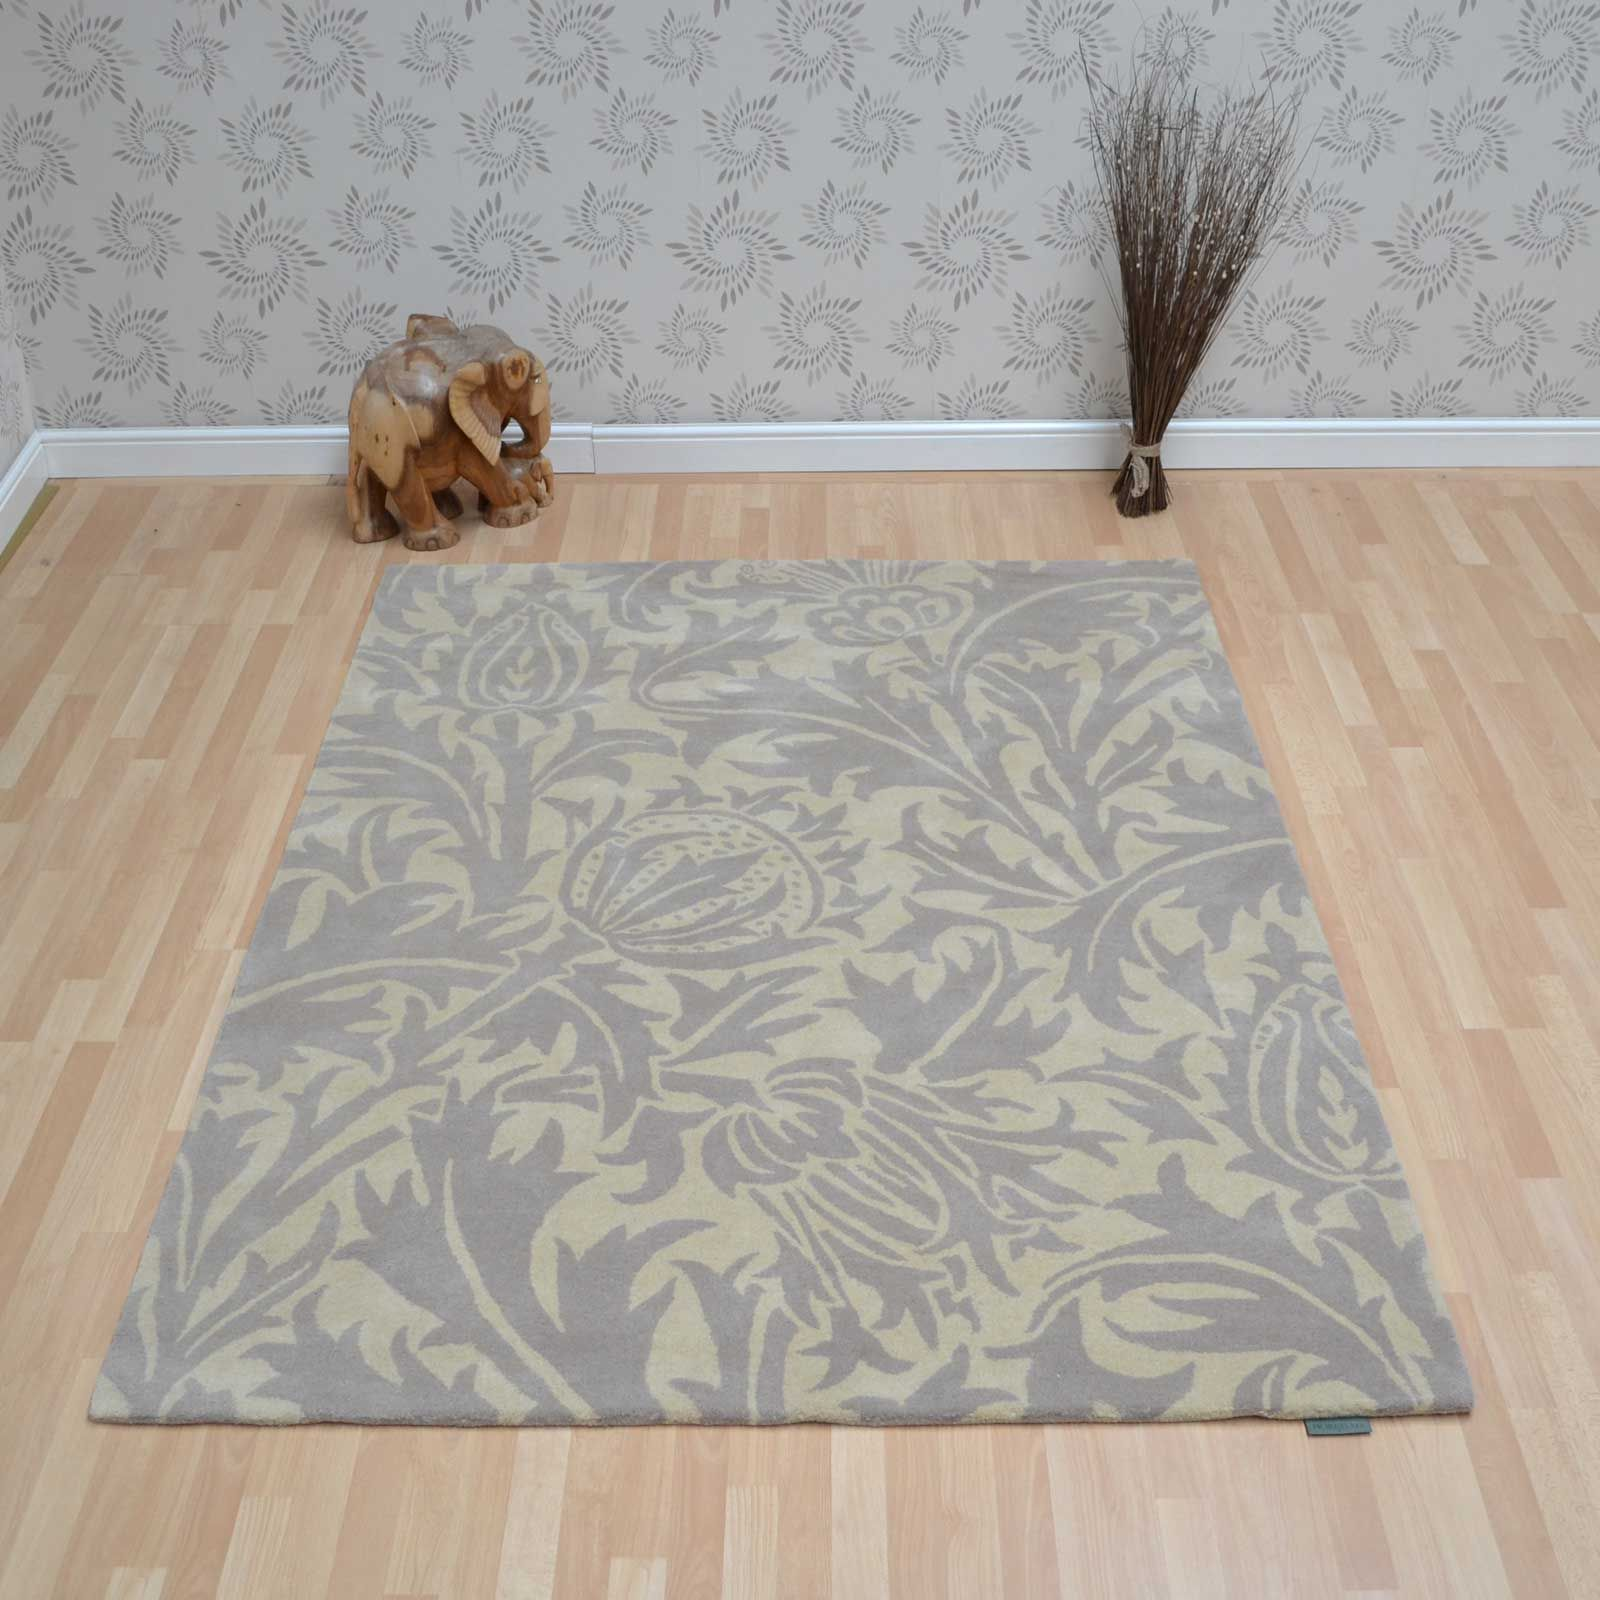 Thistle Rugs 27301 Linen by Morris and Co Rugs, Kids